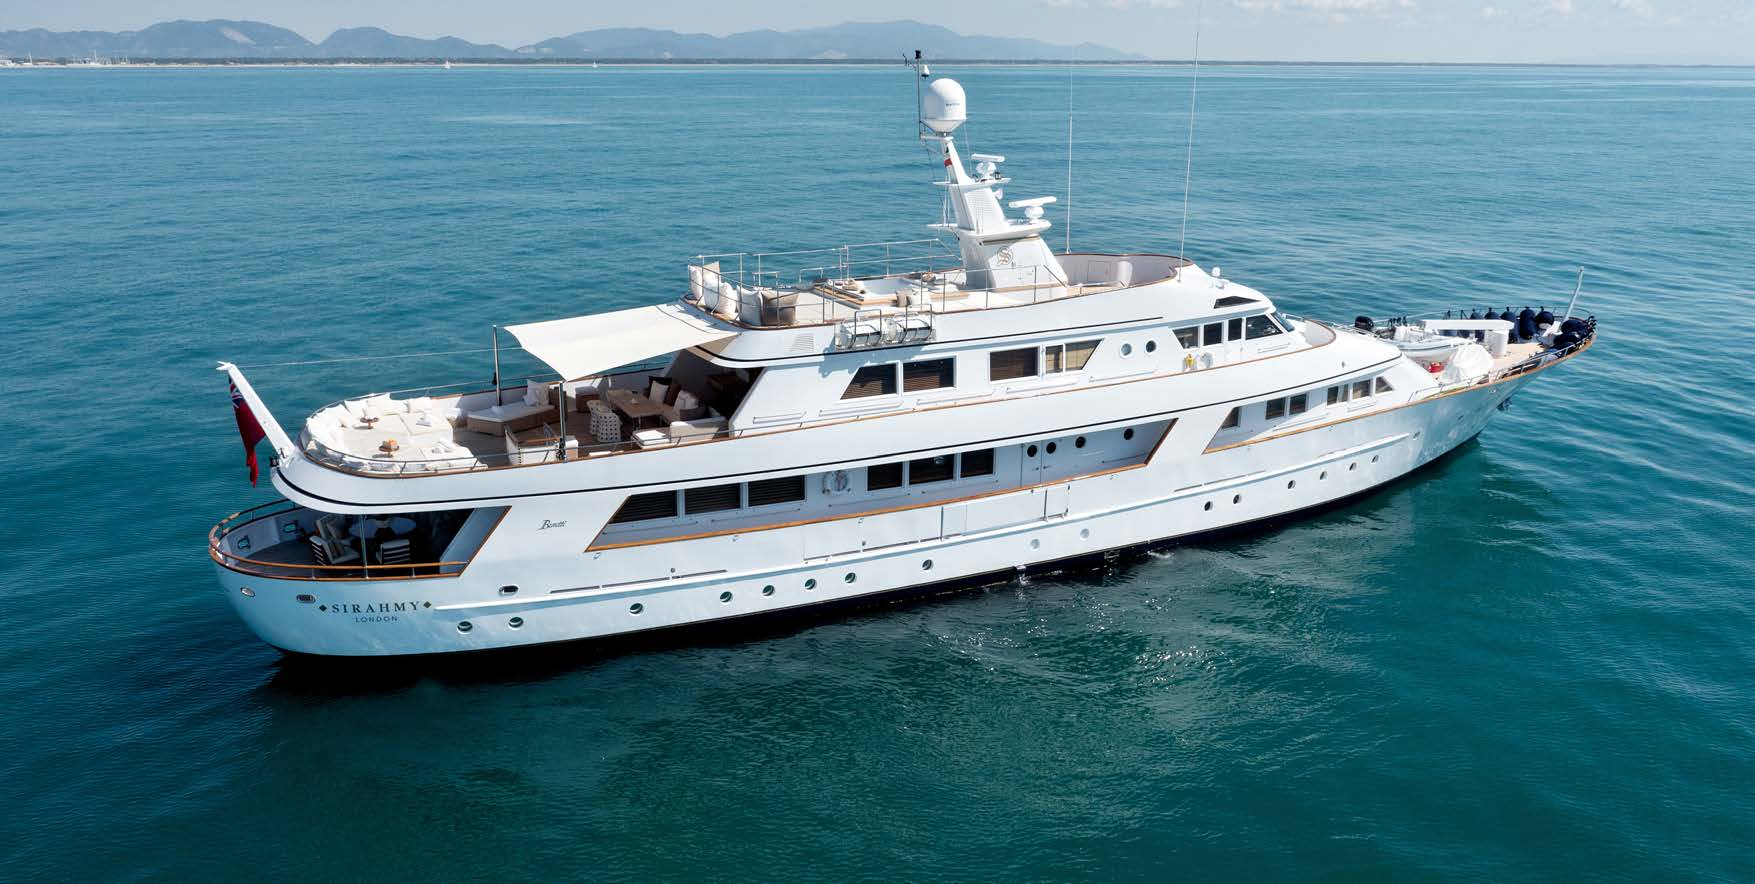 M/Y SIRAHMY yacht for charter